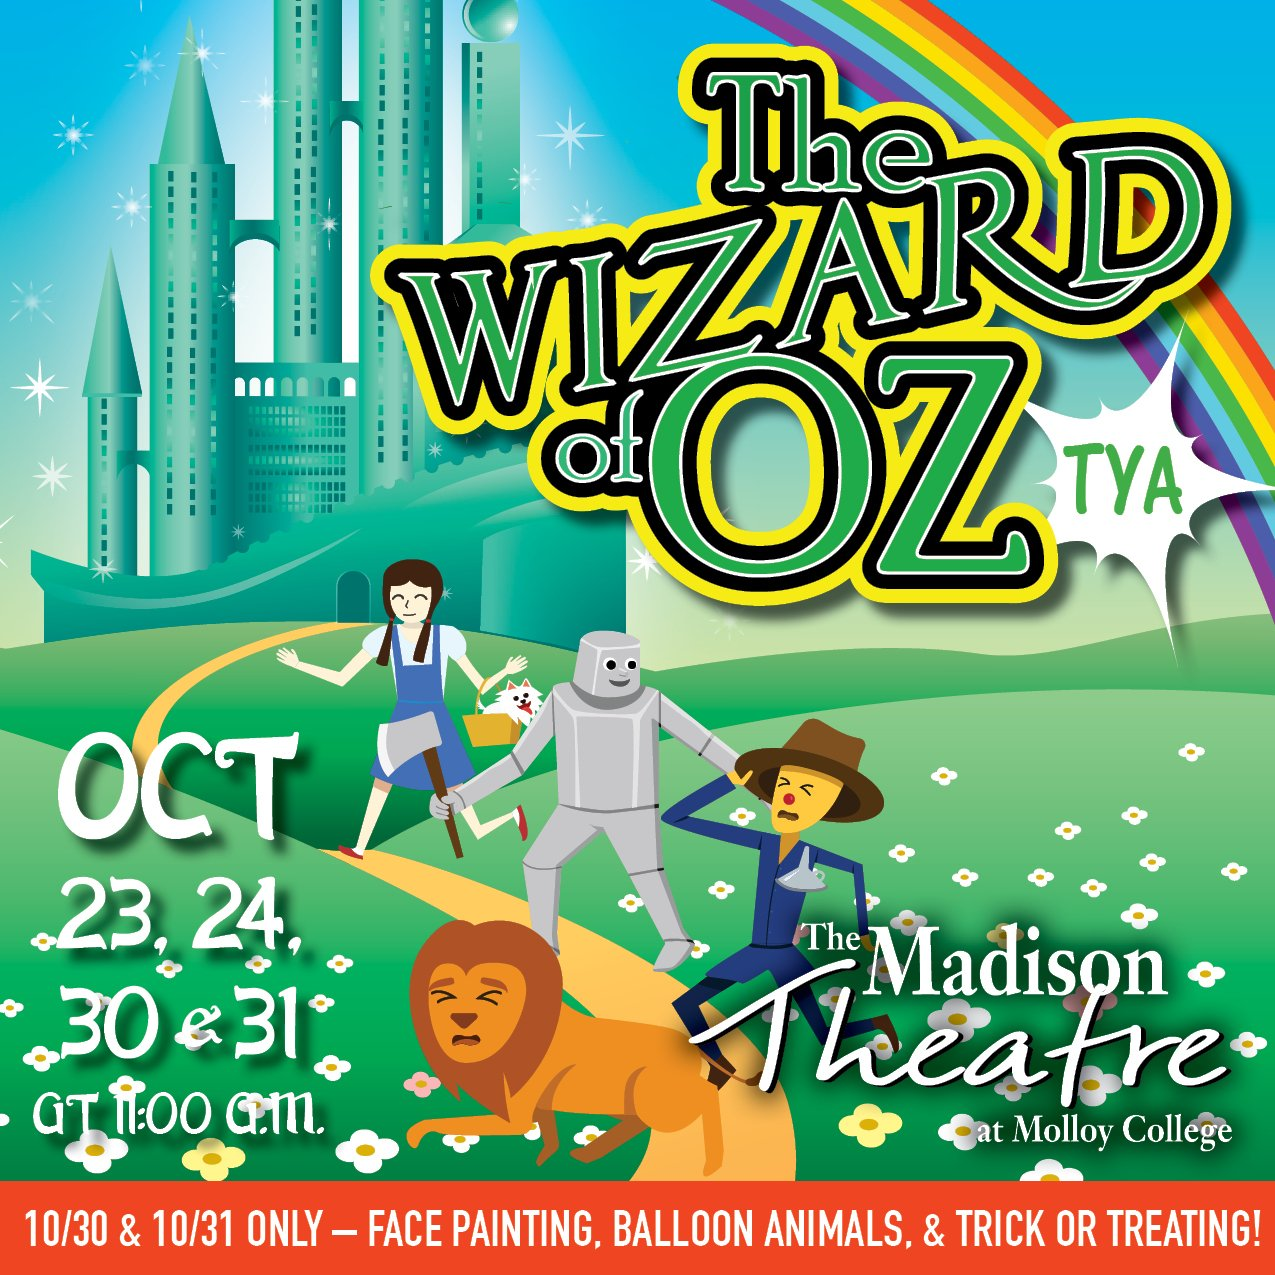 Wizard of Oz - Theatre for Young Adults at Madison Theatre at Molloy College